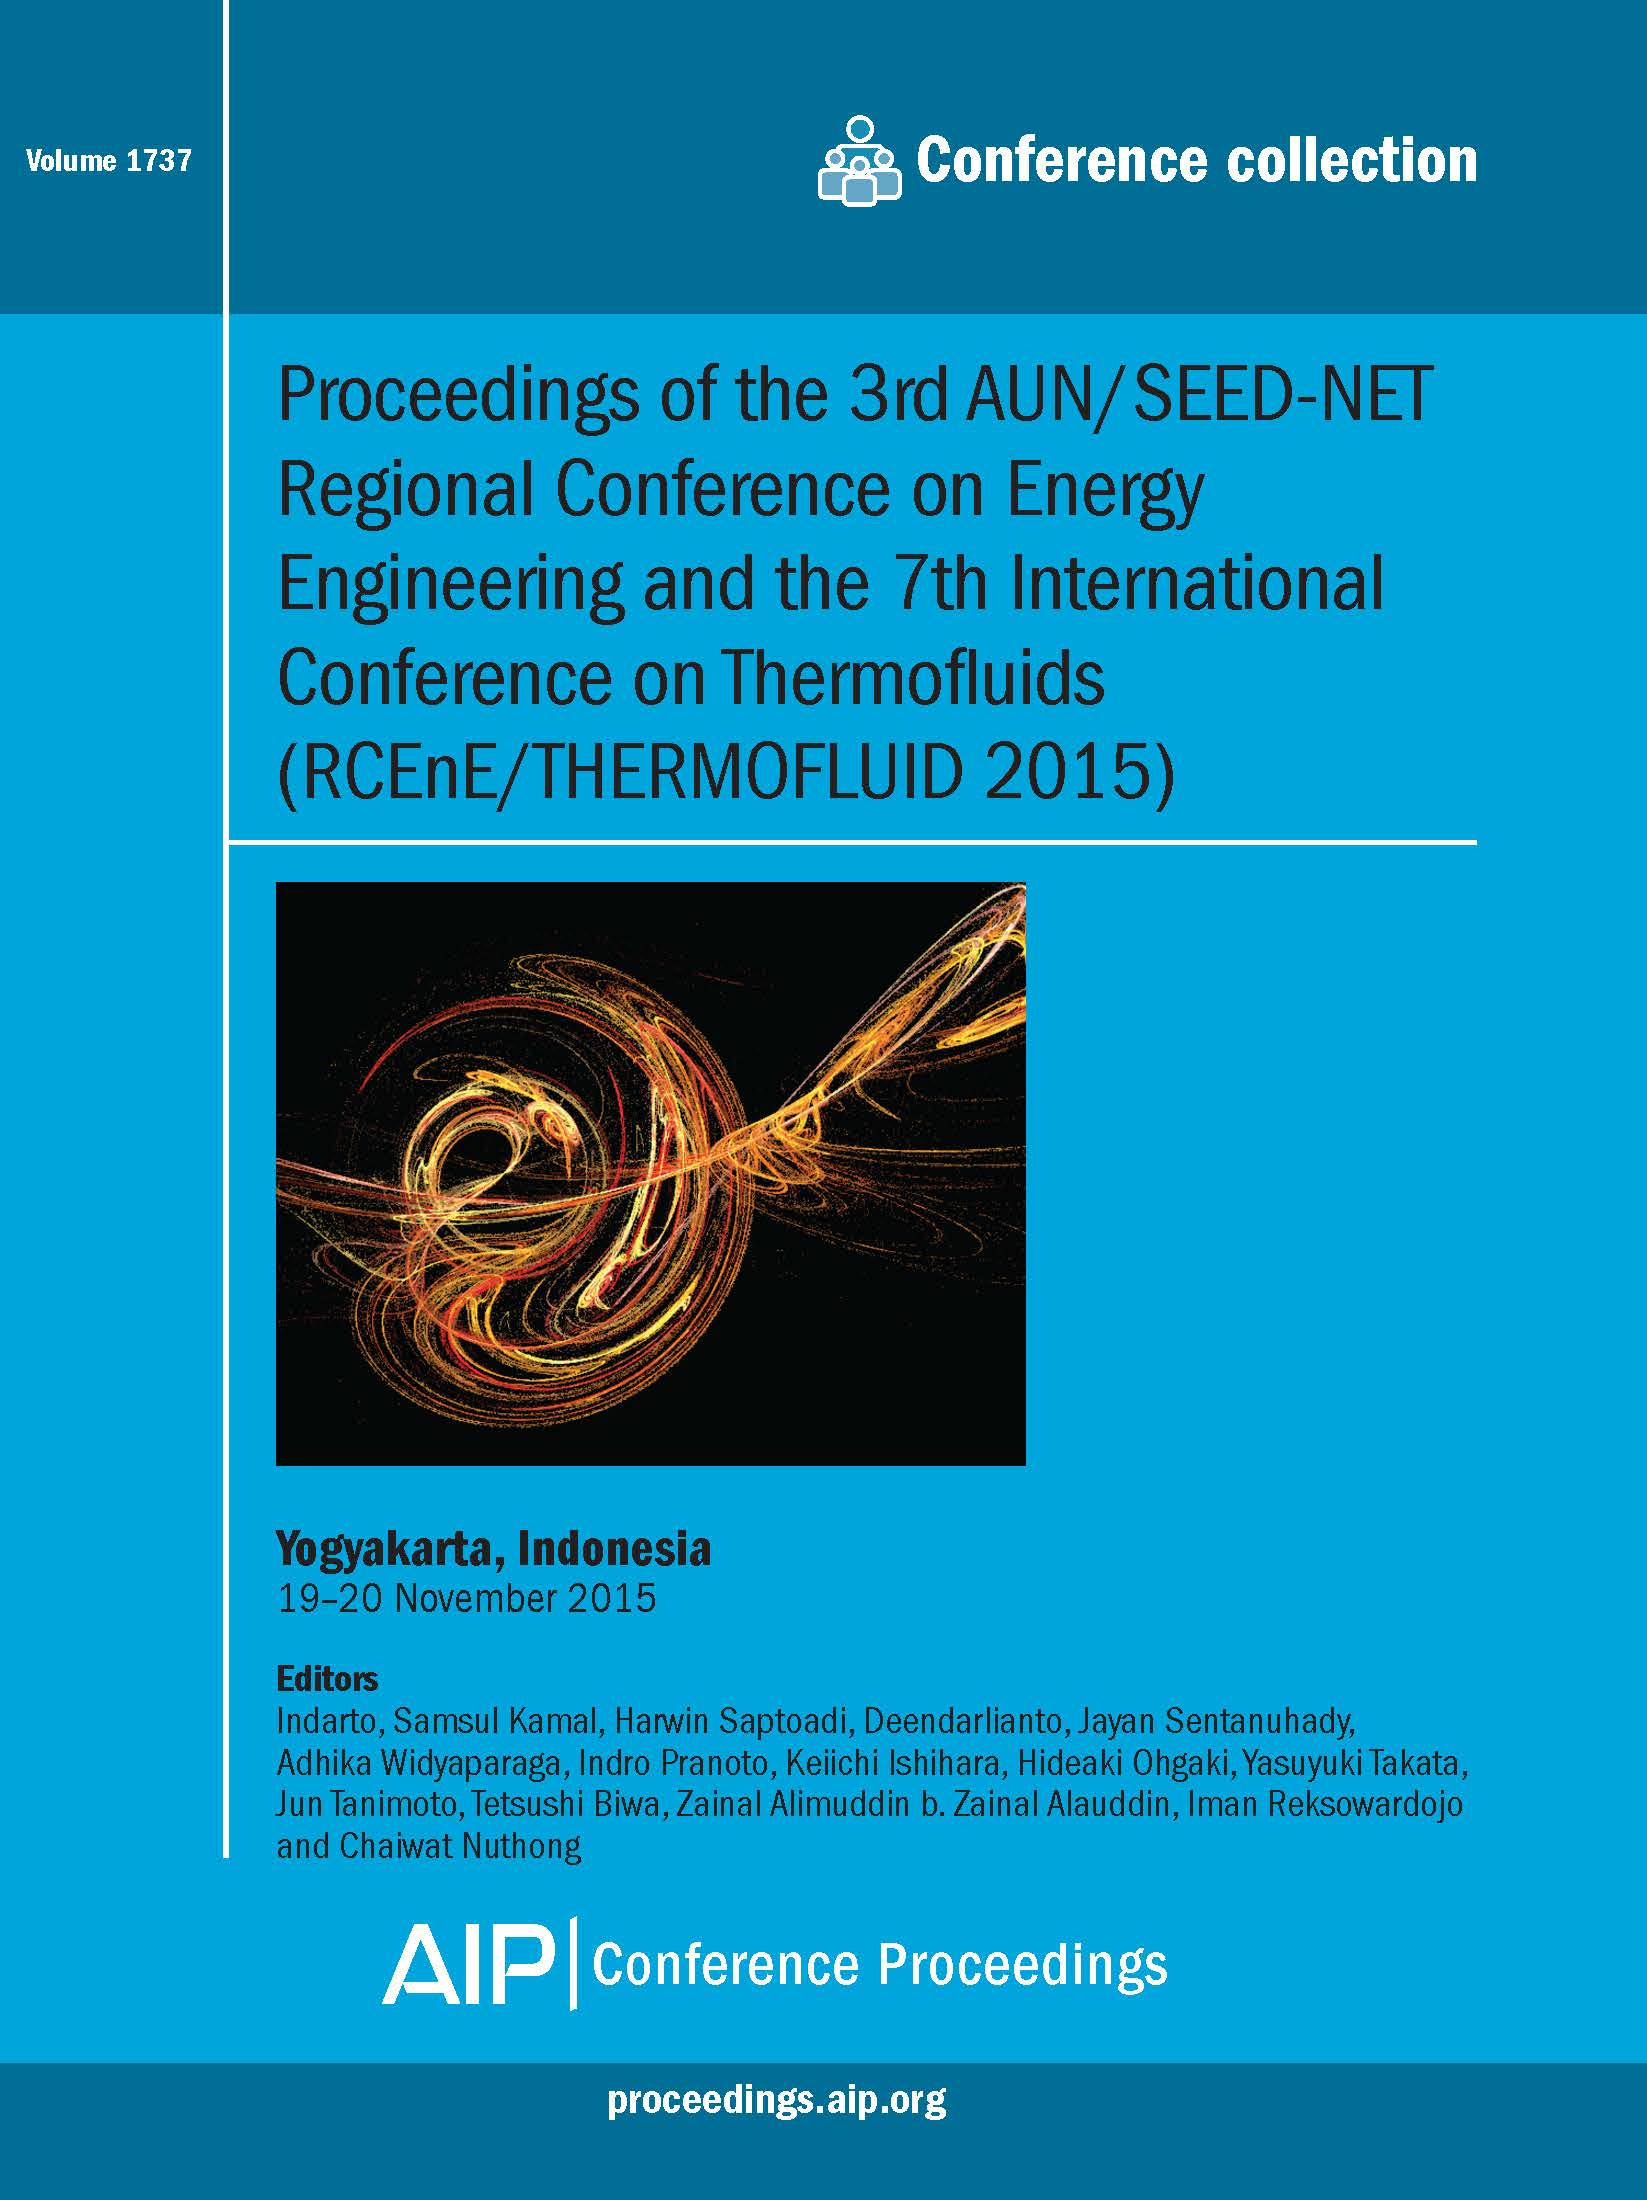 Volume 1737: Proceedings of the 3rd AUN/SEED-NET Regional Conference